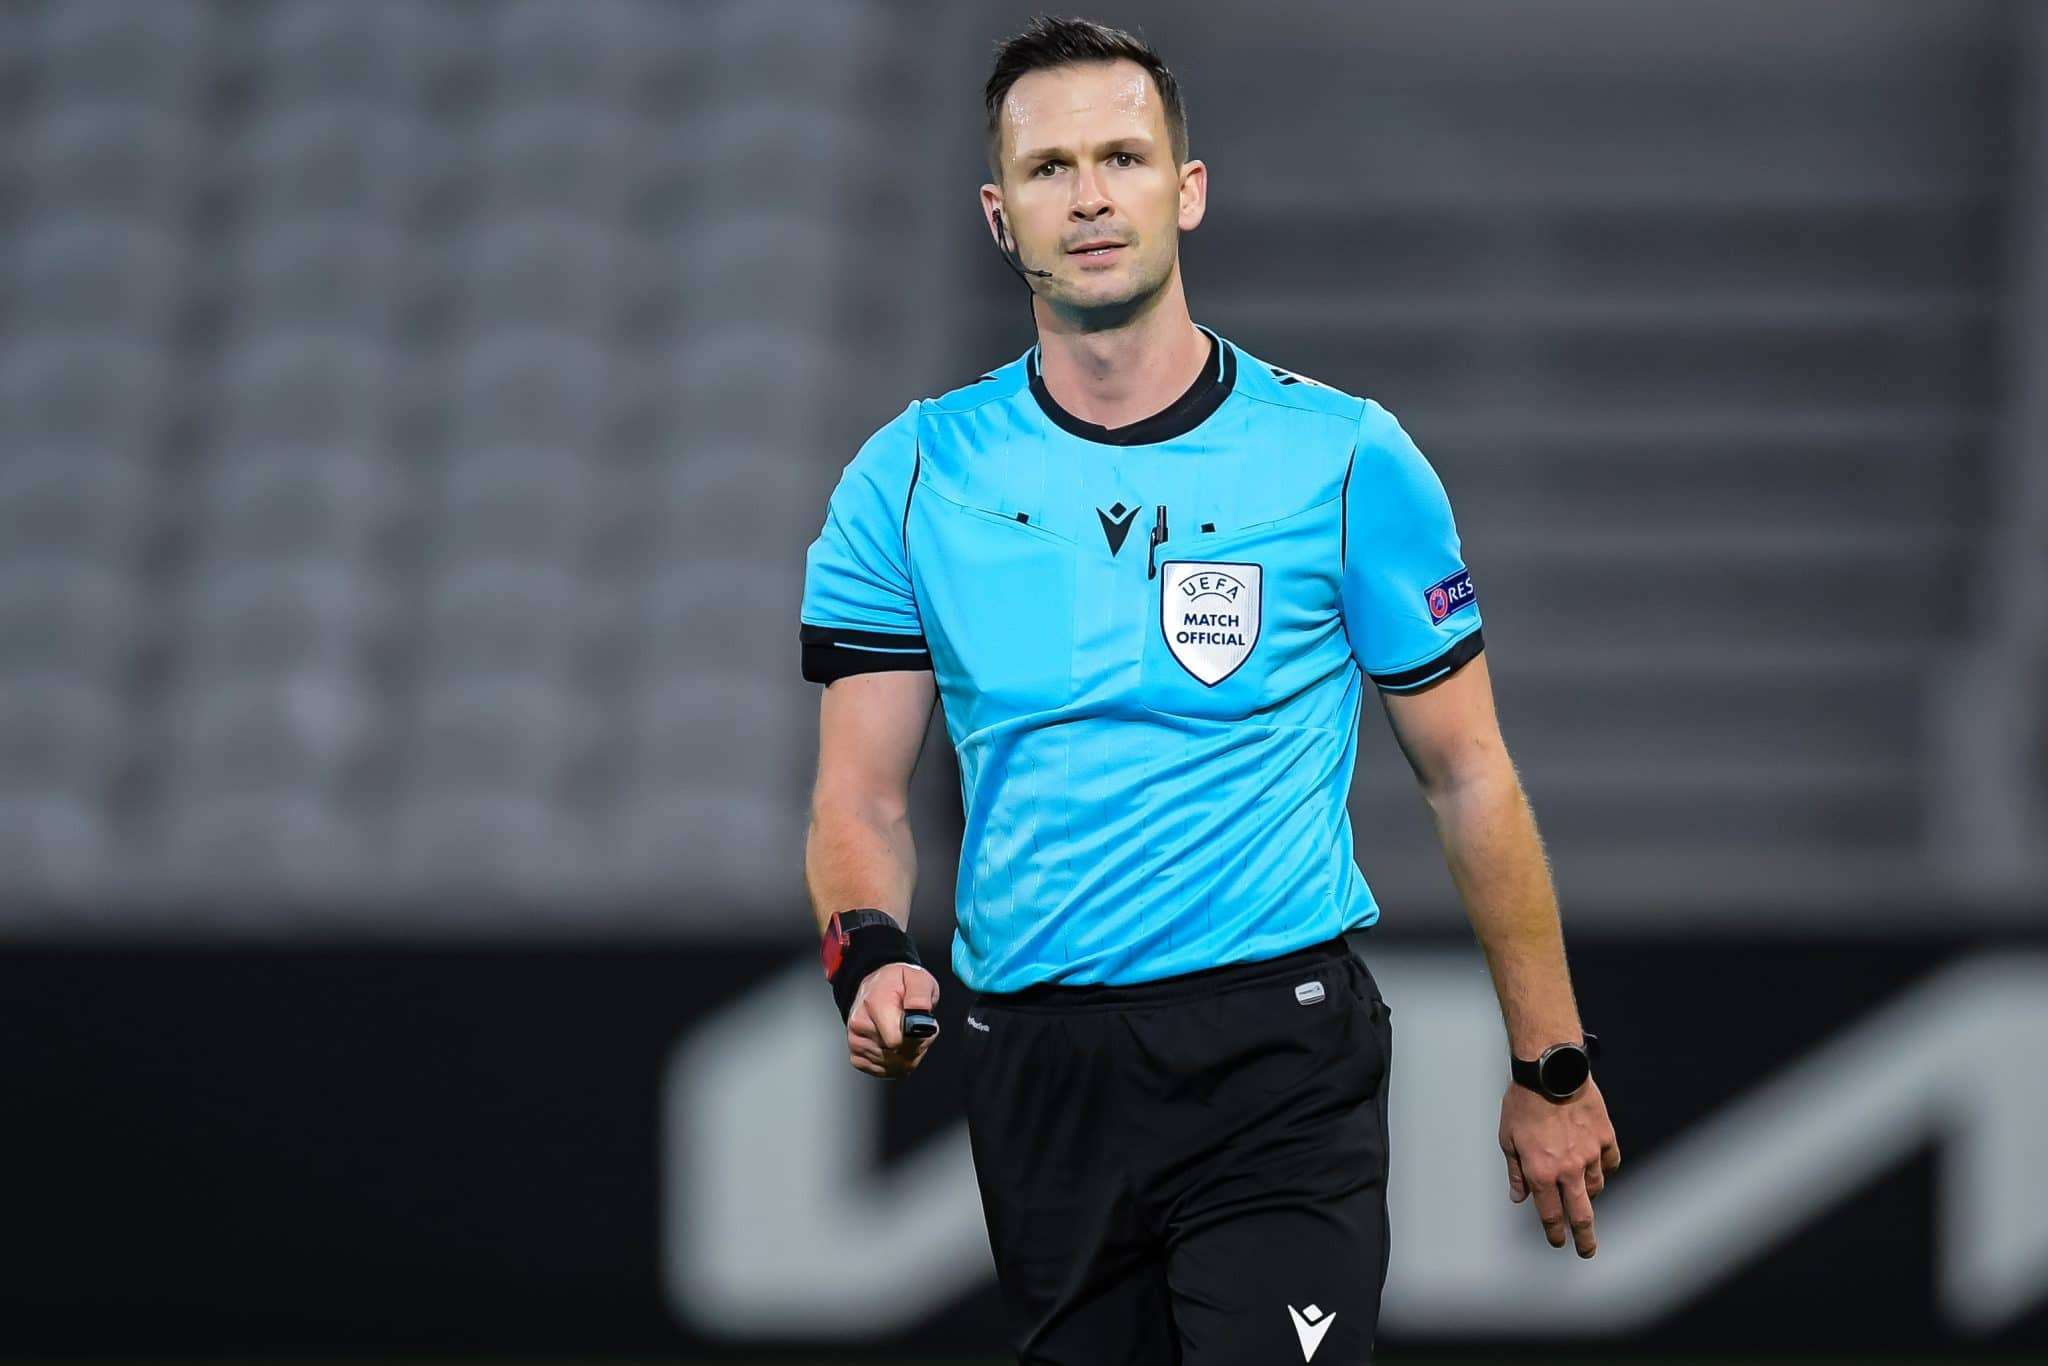 LILLE, FRANCE - FEBRUARY 18: referee Ivan Kruzliak during the UEFA Europa League match between Lille OSC and Ajax at Stade Pierre Mauroy on February 18, 2021 in Lille, France (Photo by Gerrit van Keulen/BSR Agency/Getty Images)